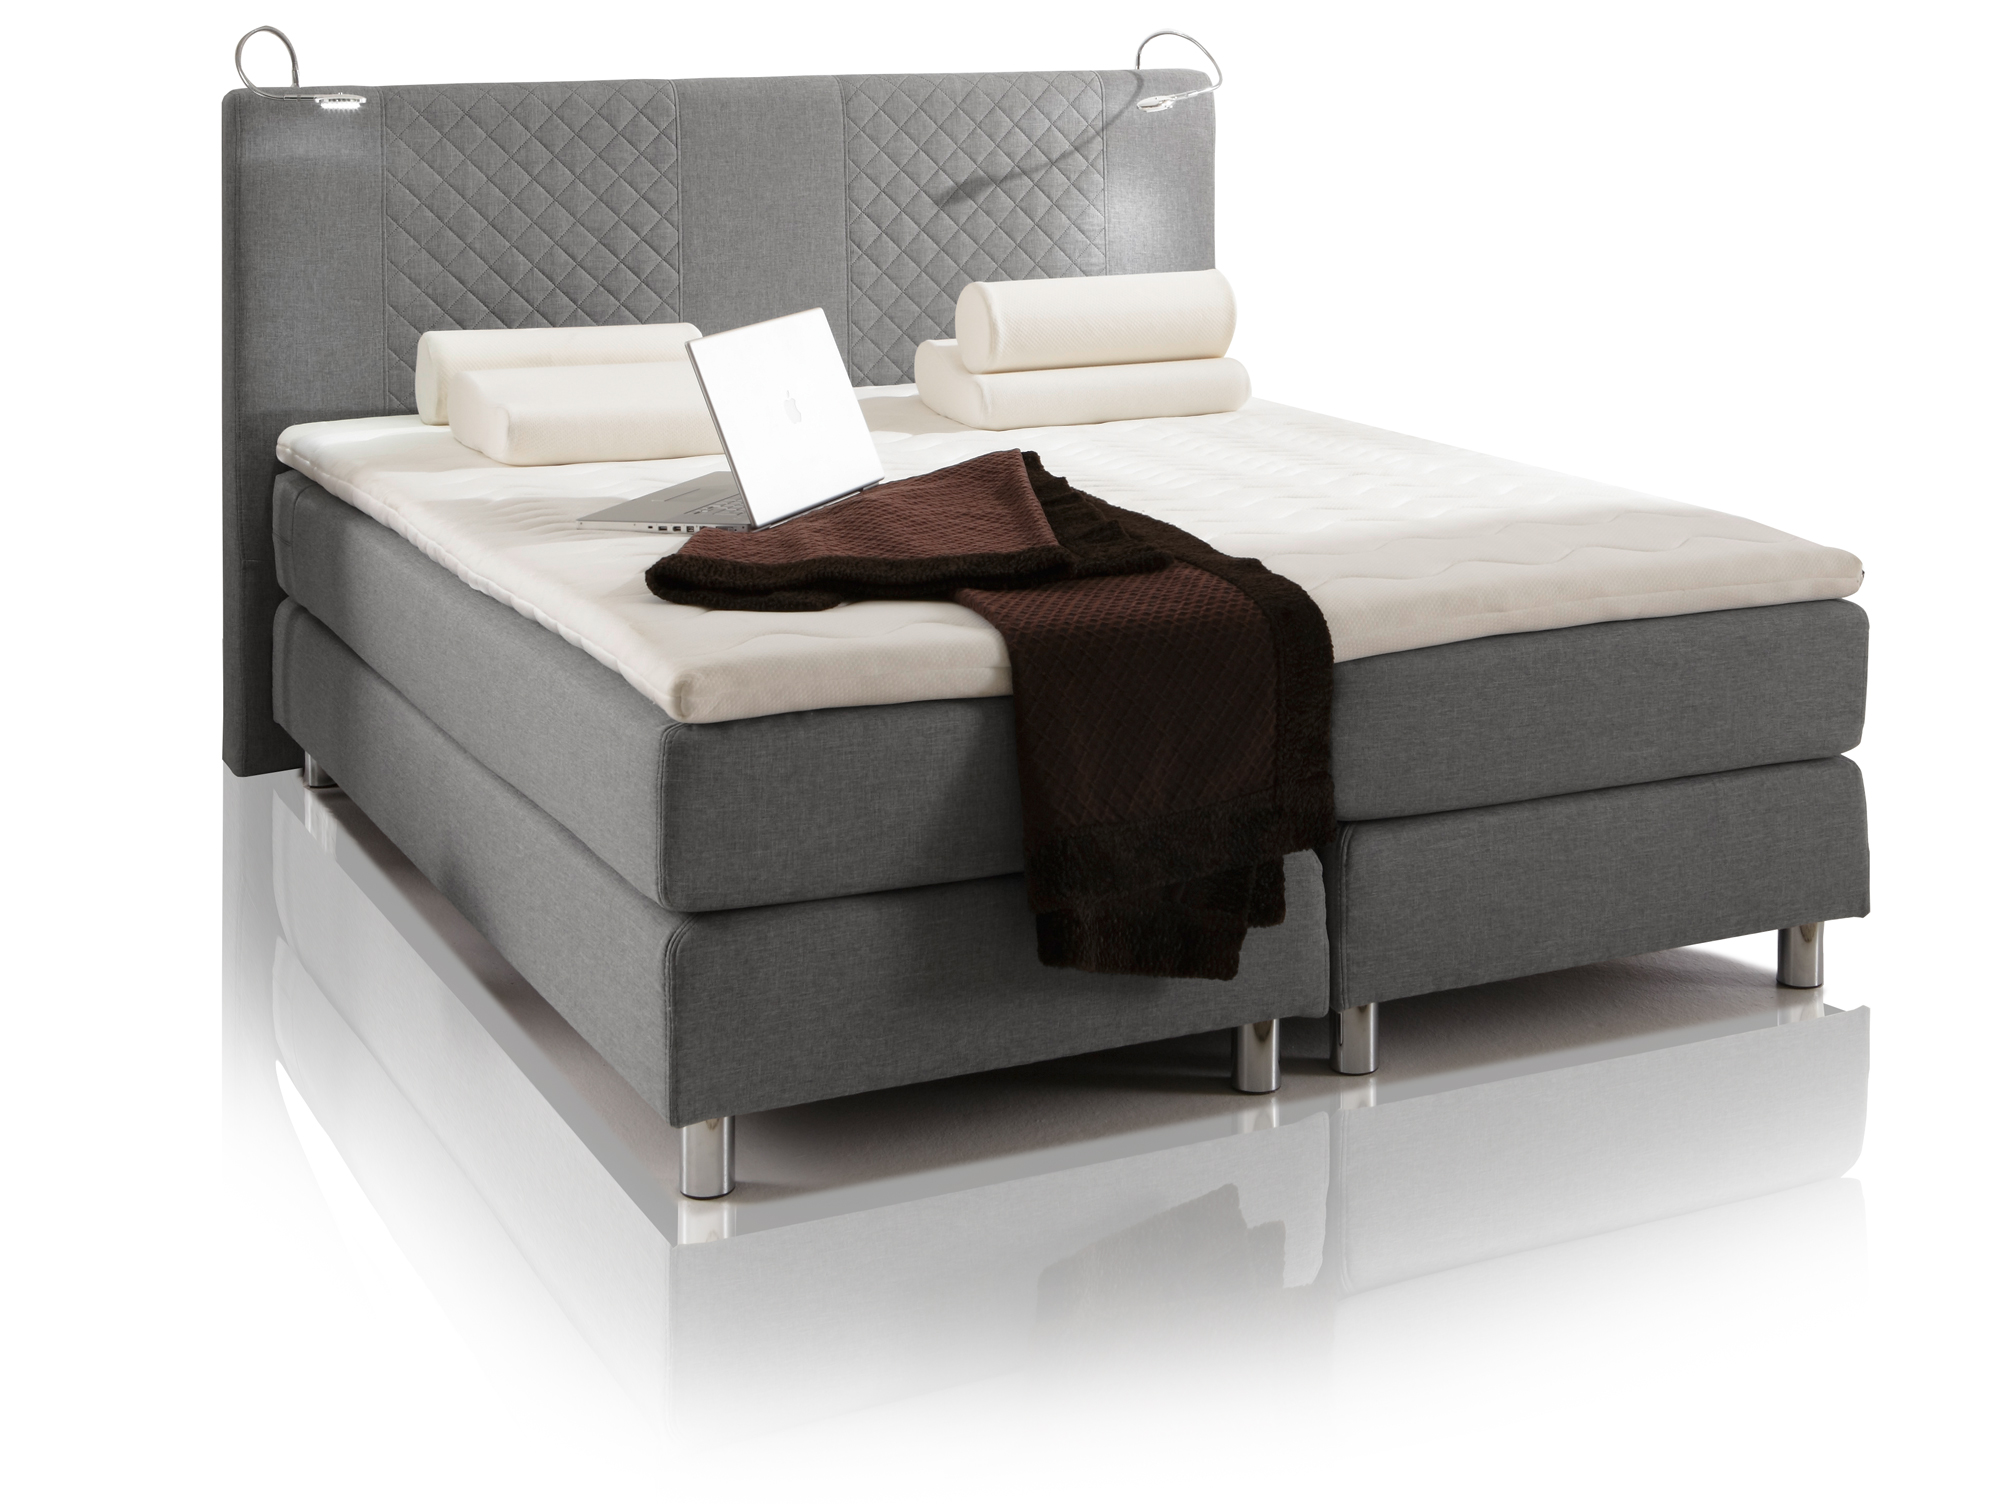 boxspringbett niedriges kopfteil boxspringbett mit niedrigem kopfteil boxspring welt 31. Black Bedroom Furniture Sets. Home Design Ideas